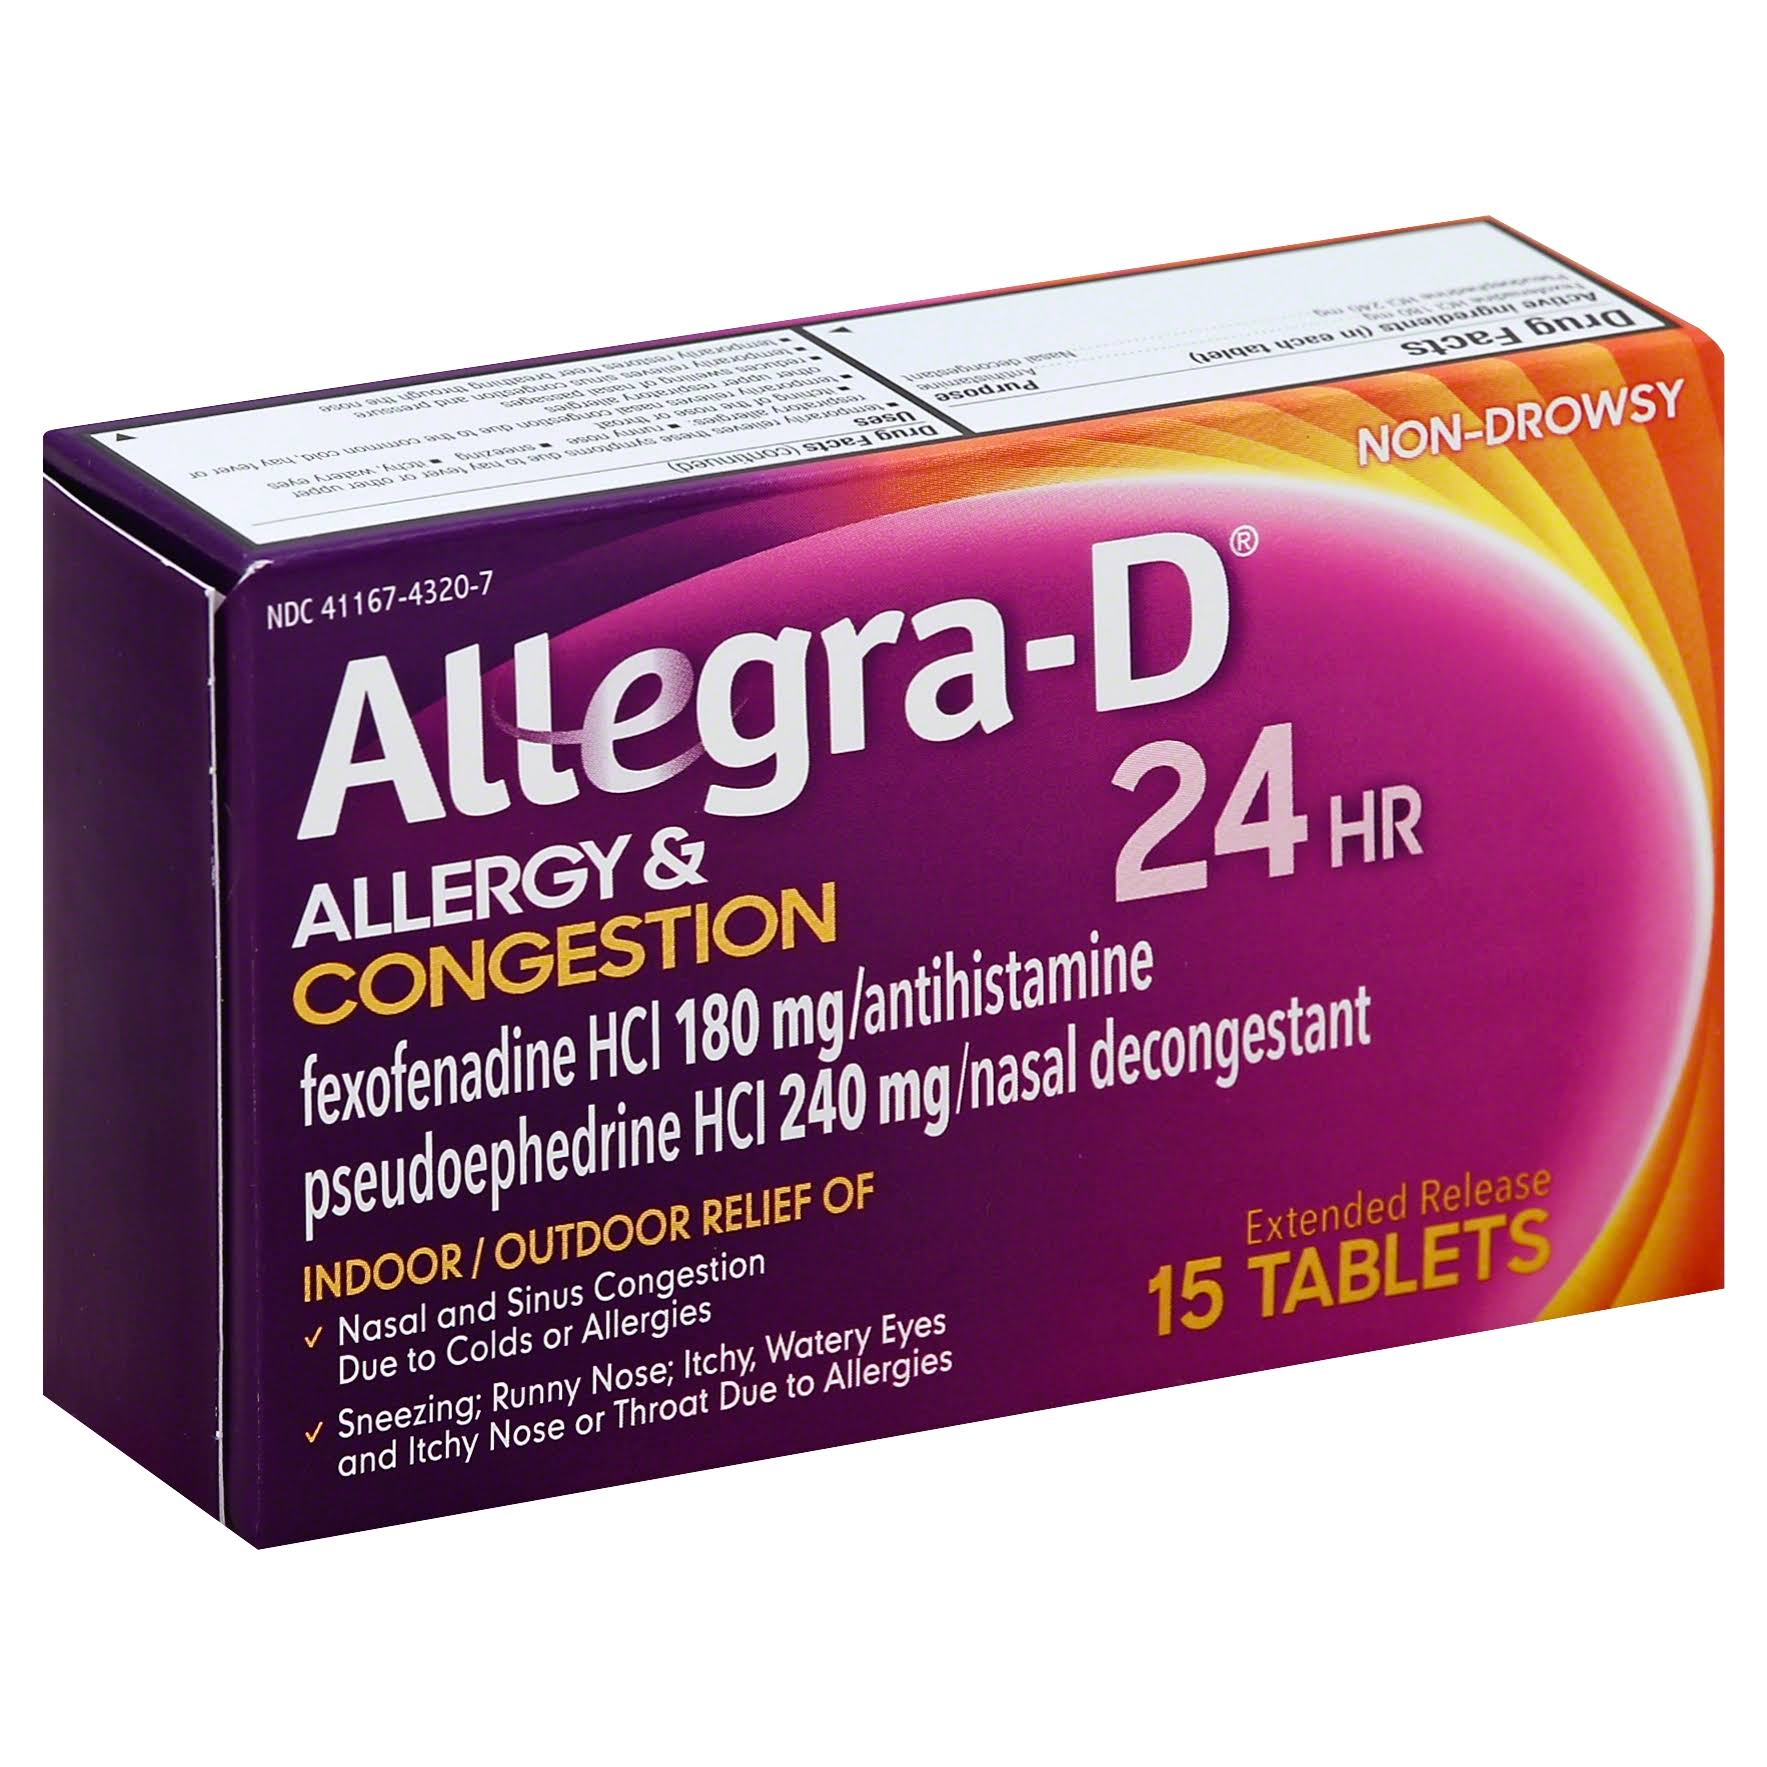 Allegra D Allergy & Congestion, 24 HR, Extended Release Tablets - 15 tablets